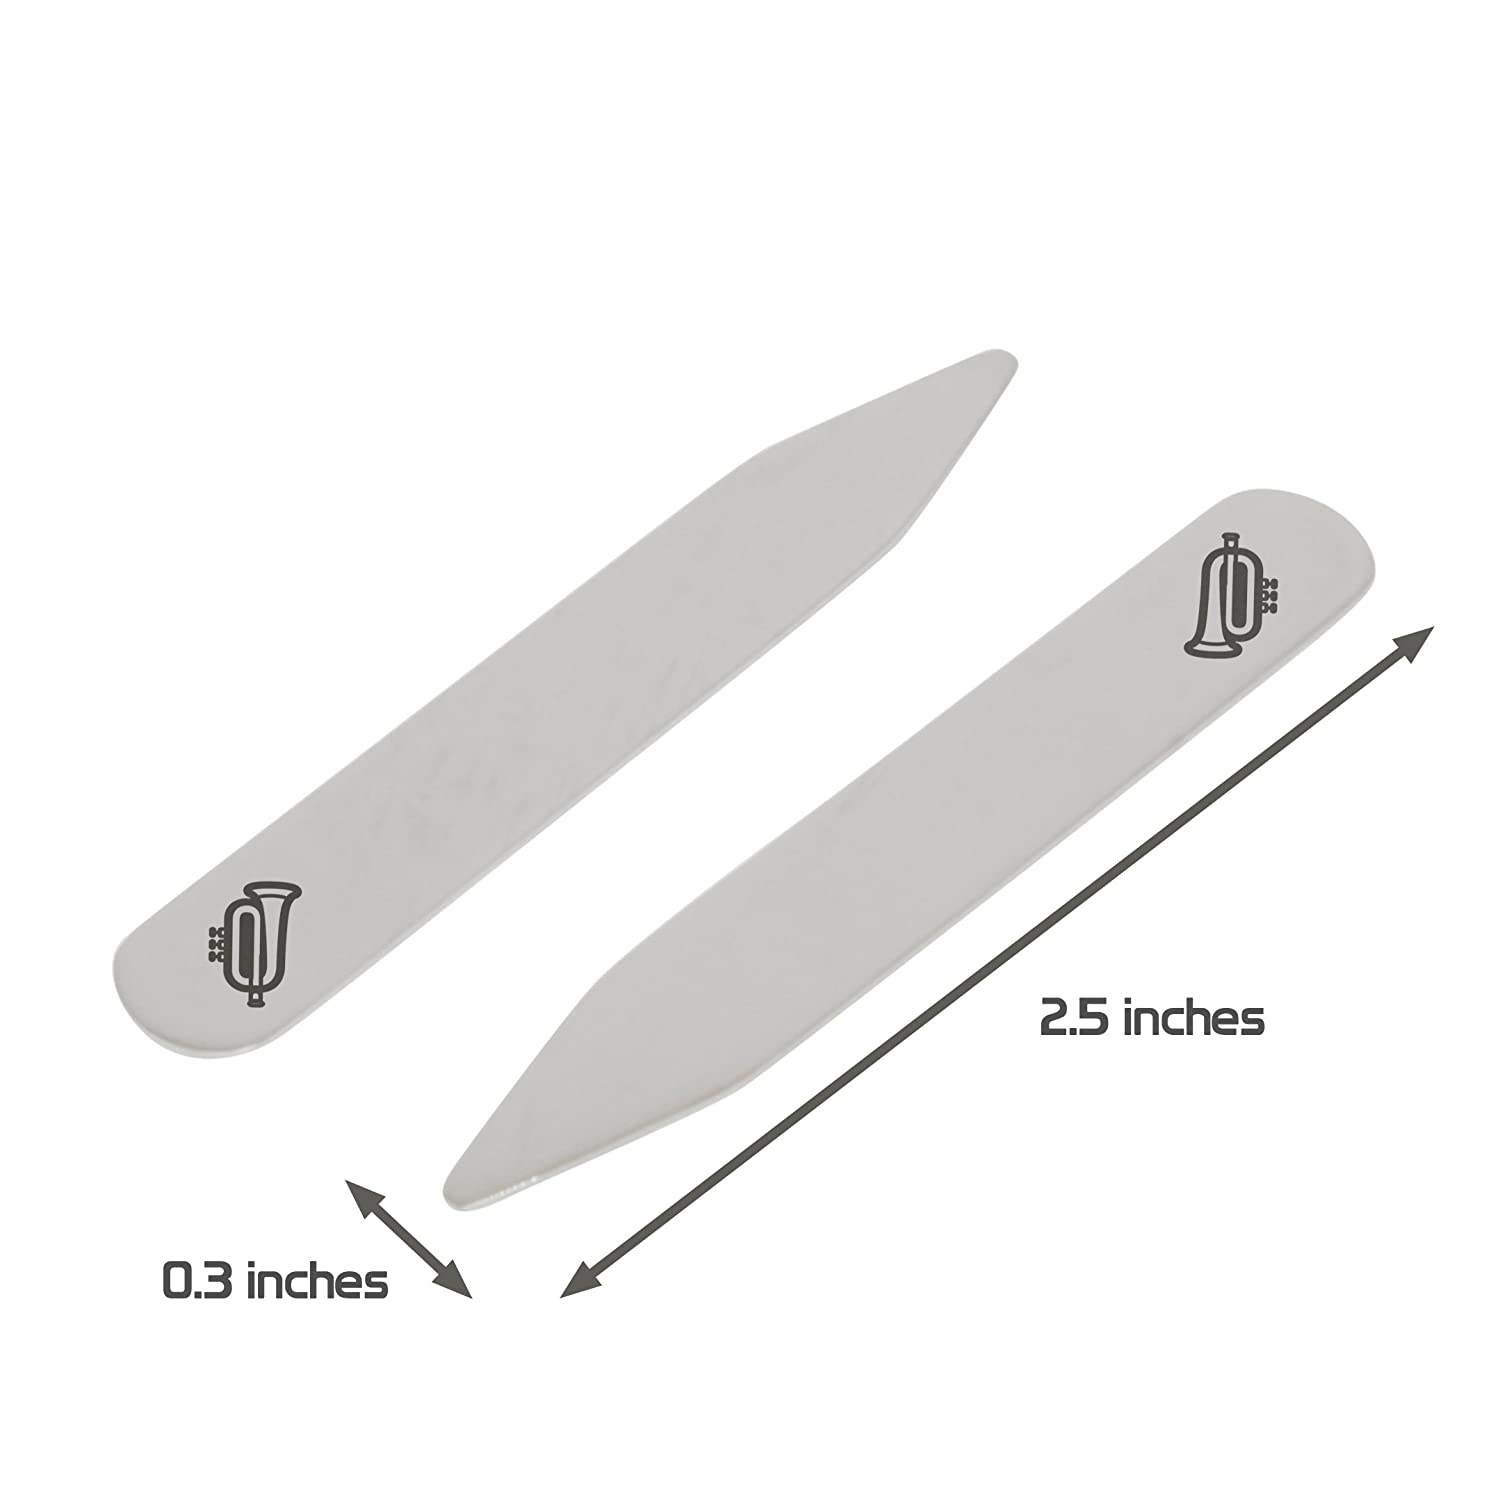 MODERN GOODS SHOP Stainless Steel Collar Stays With Laser Engraved Trumpet Design 2.5 Inch Metal Collar Stiffeners Made In USA